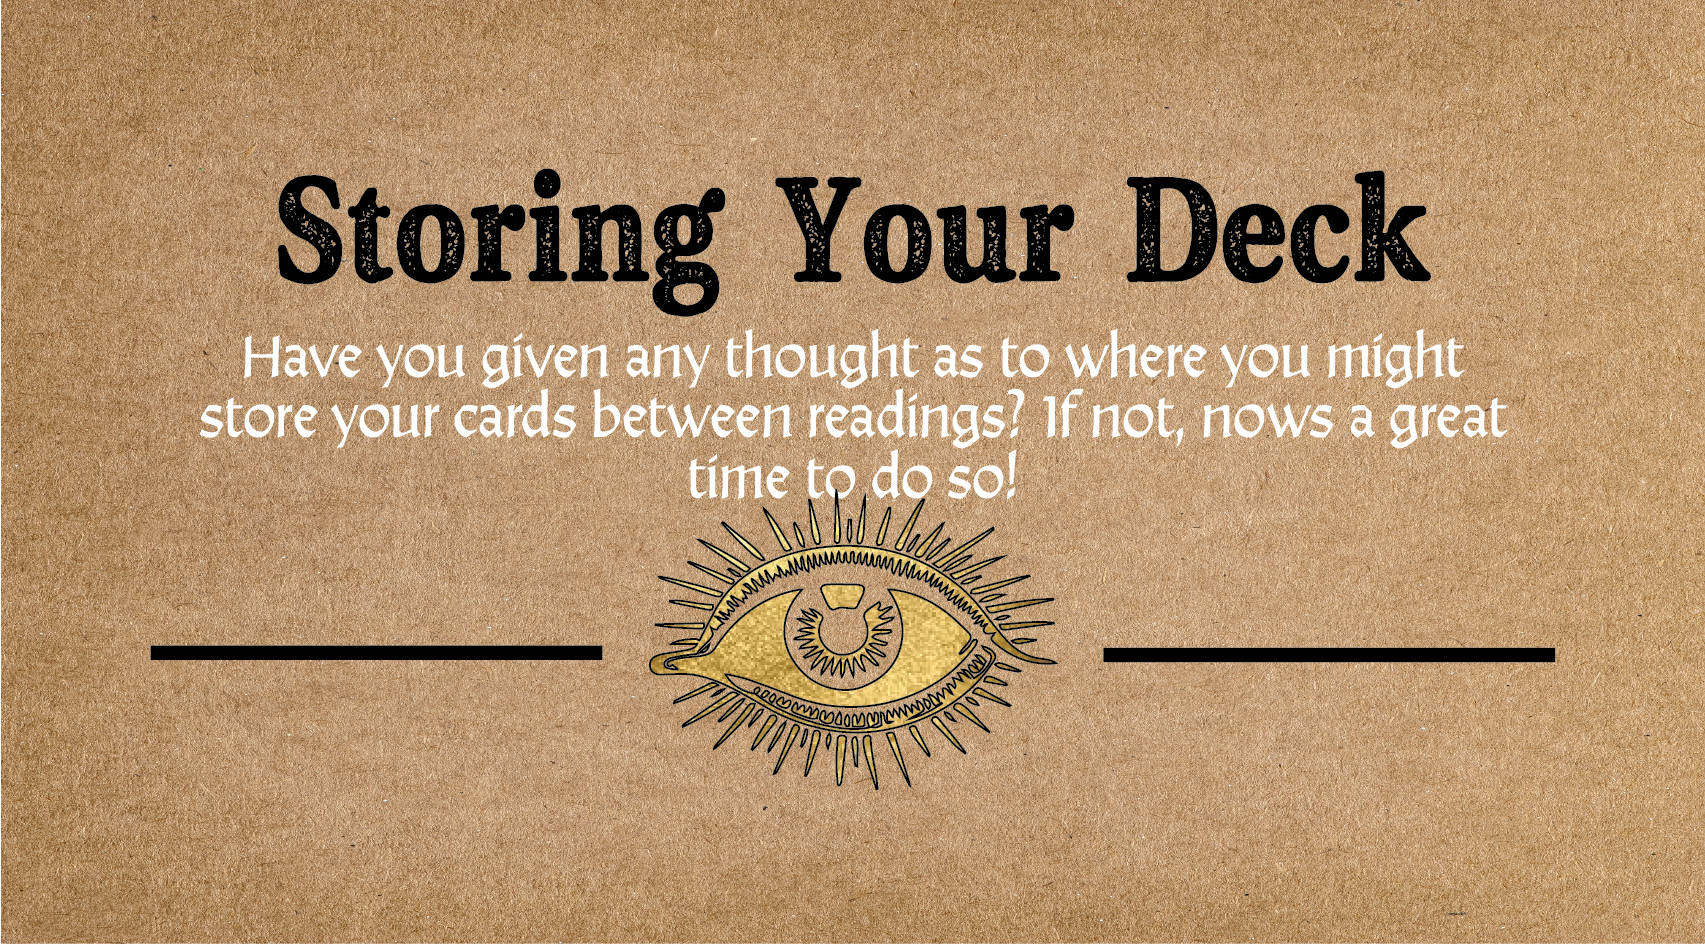 Storing your deck